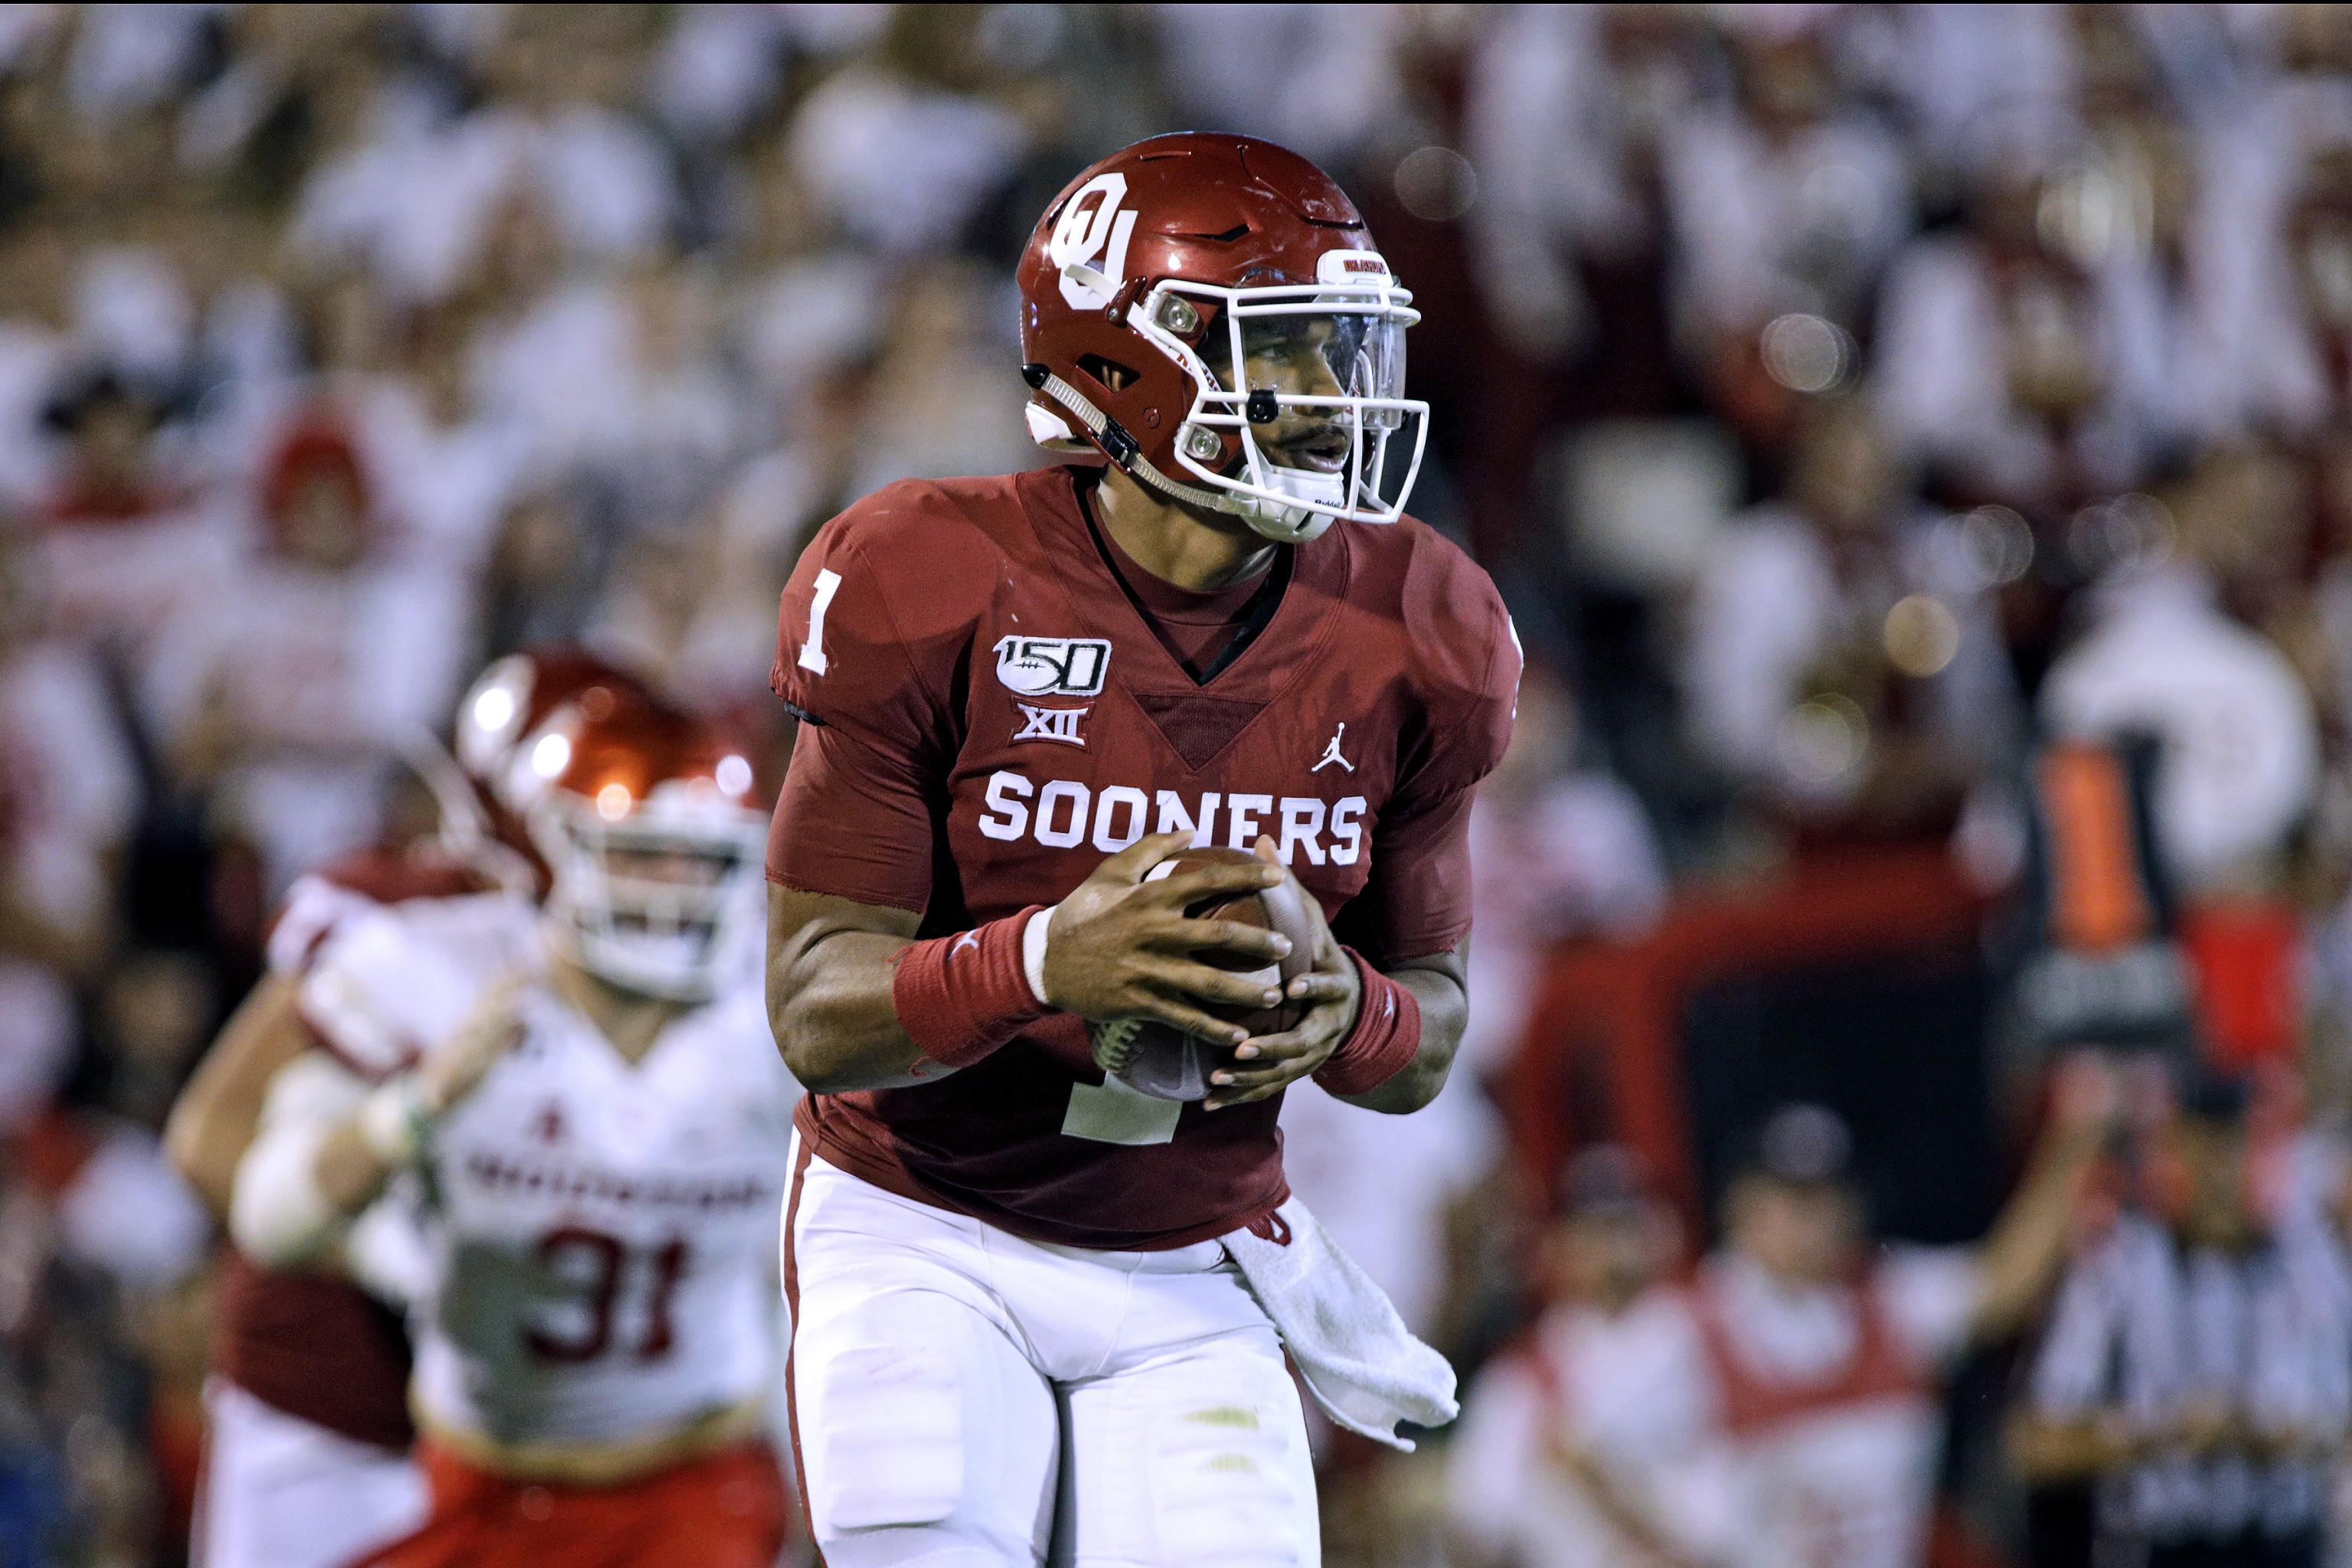 2019 Heisman Trophy Odds: Tua, Lawrence, Hurts Co-Favorites